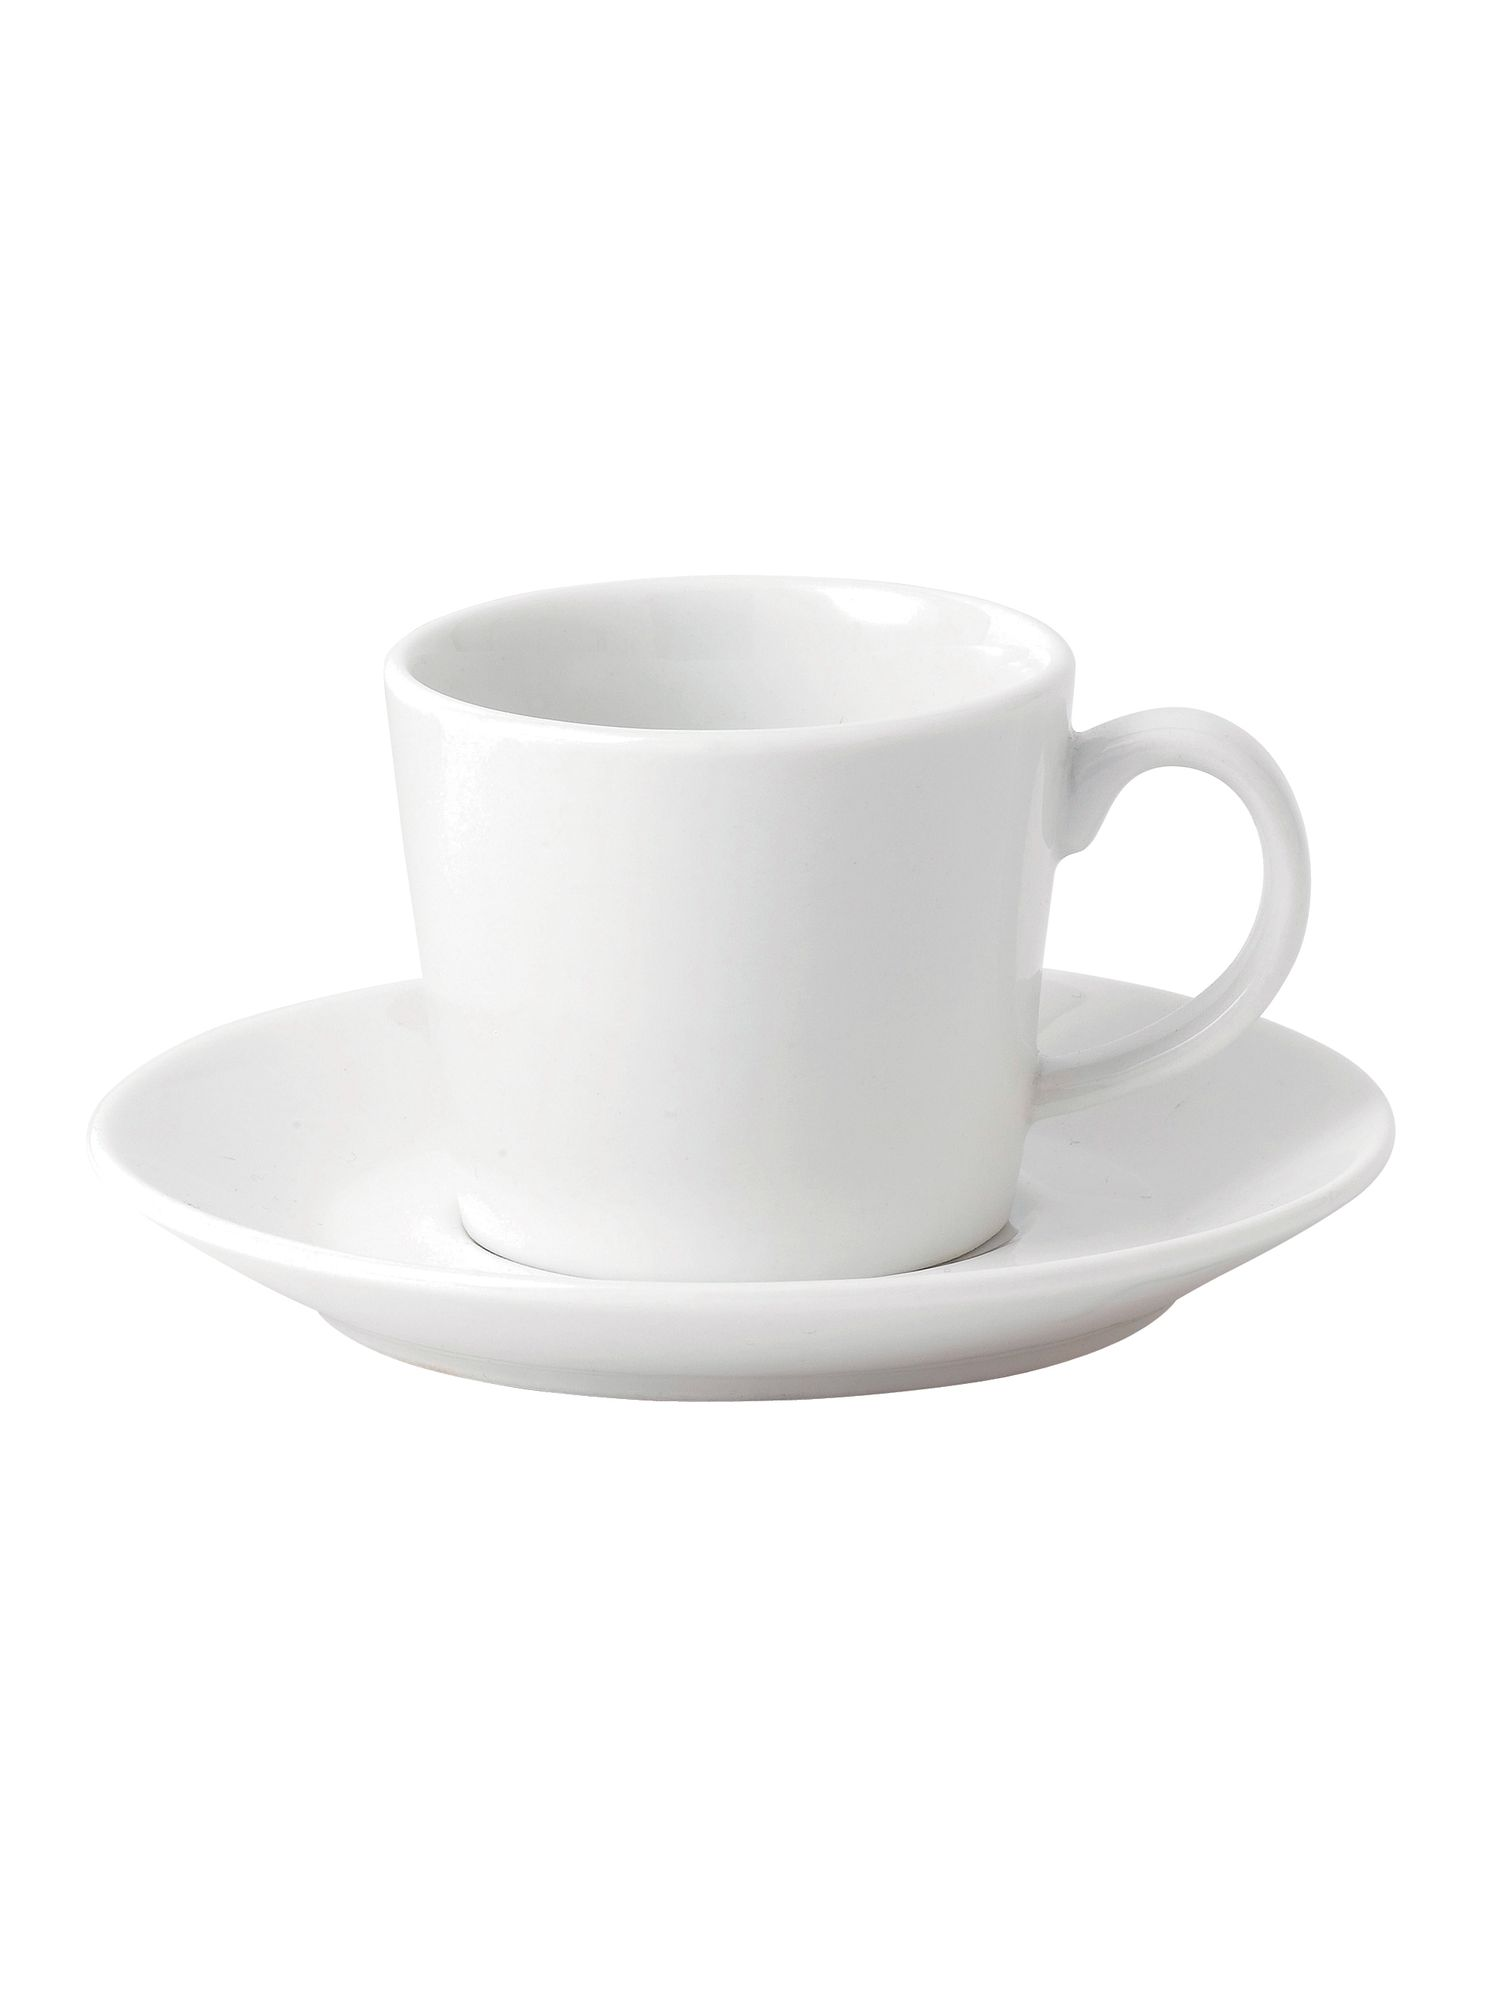 Fable white espresso cup and saucer